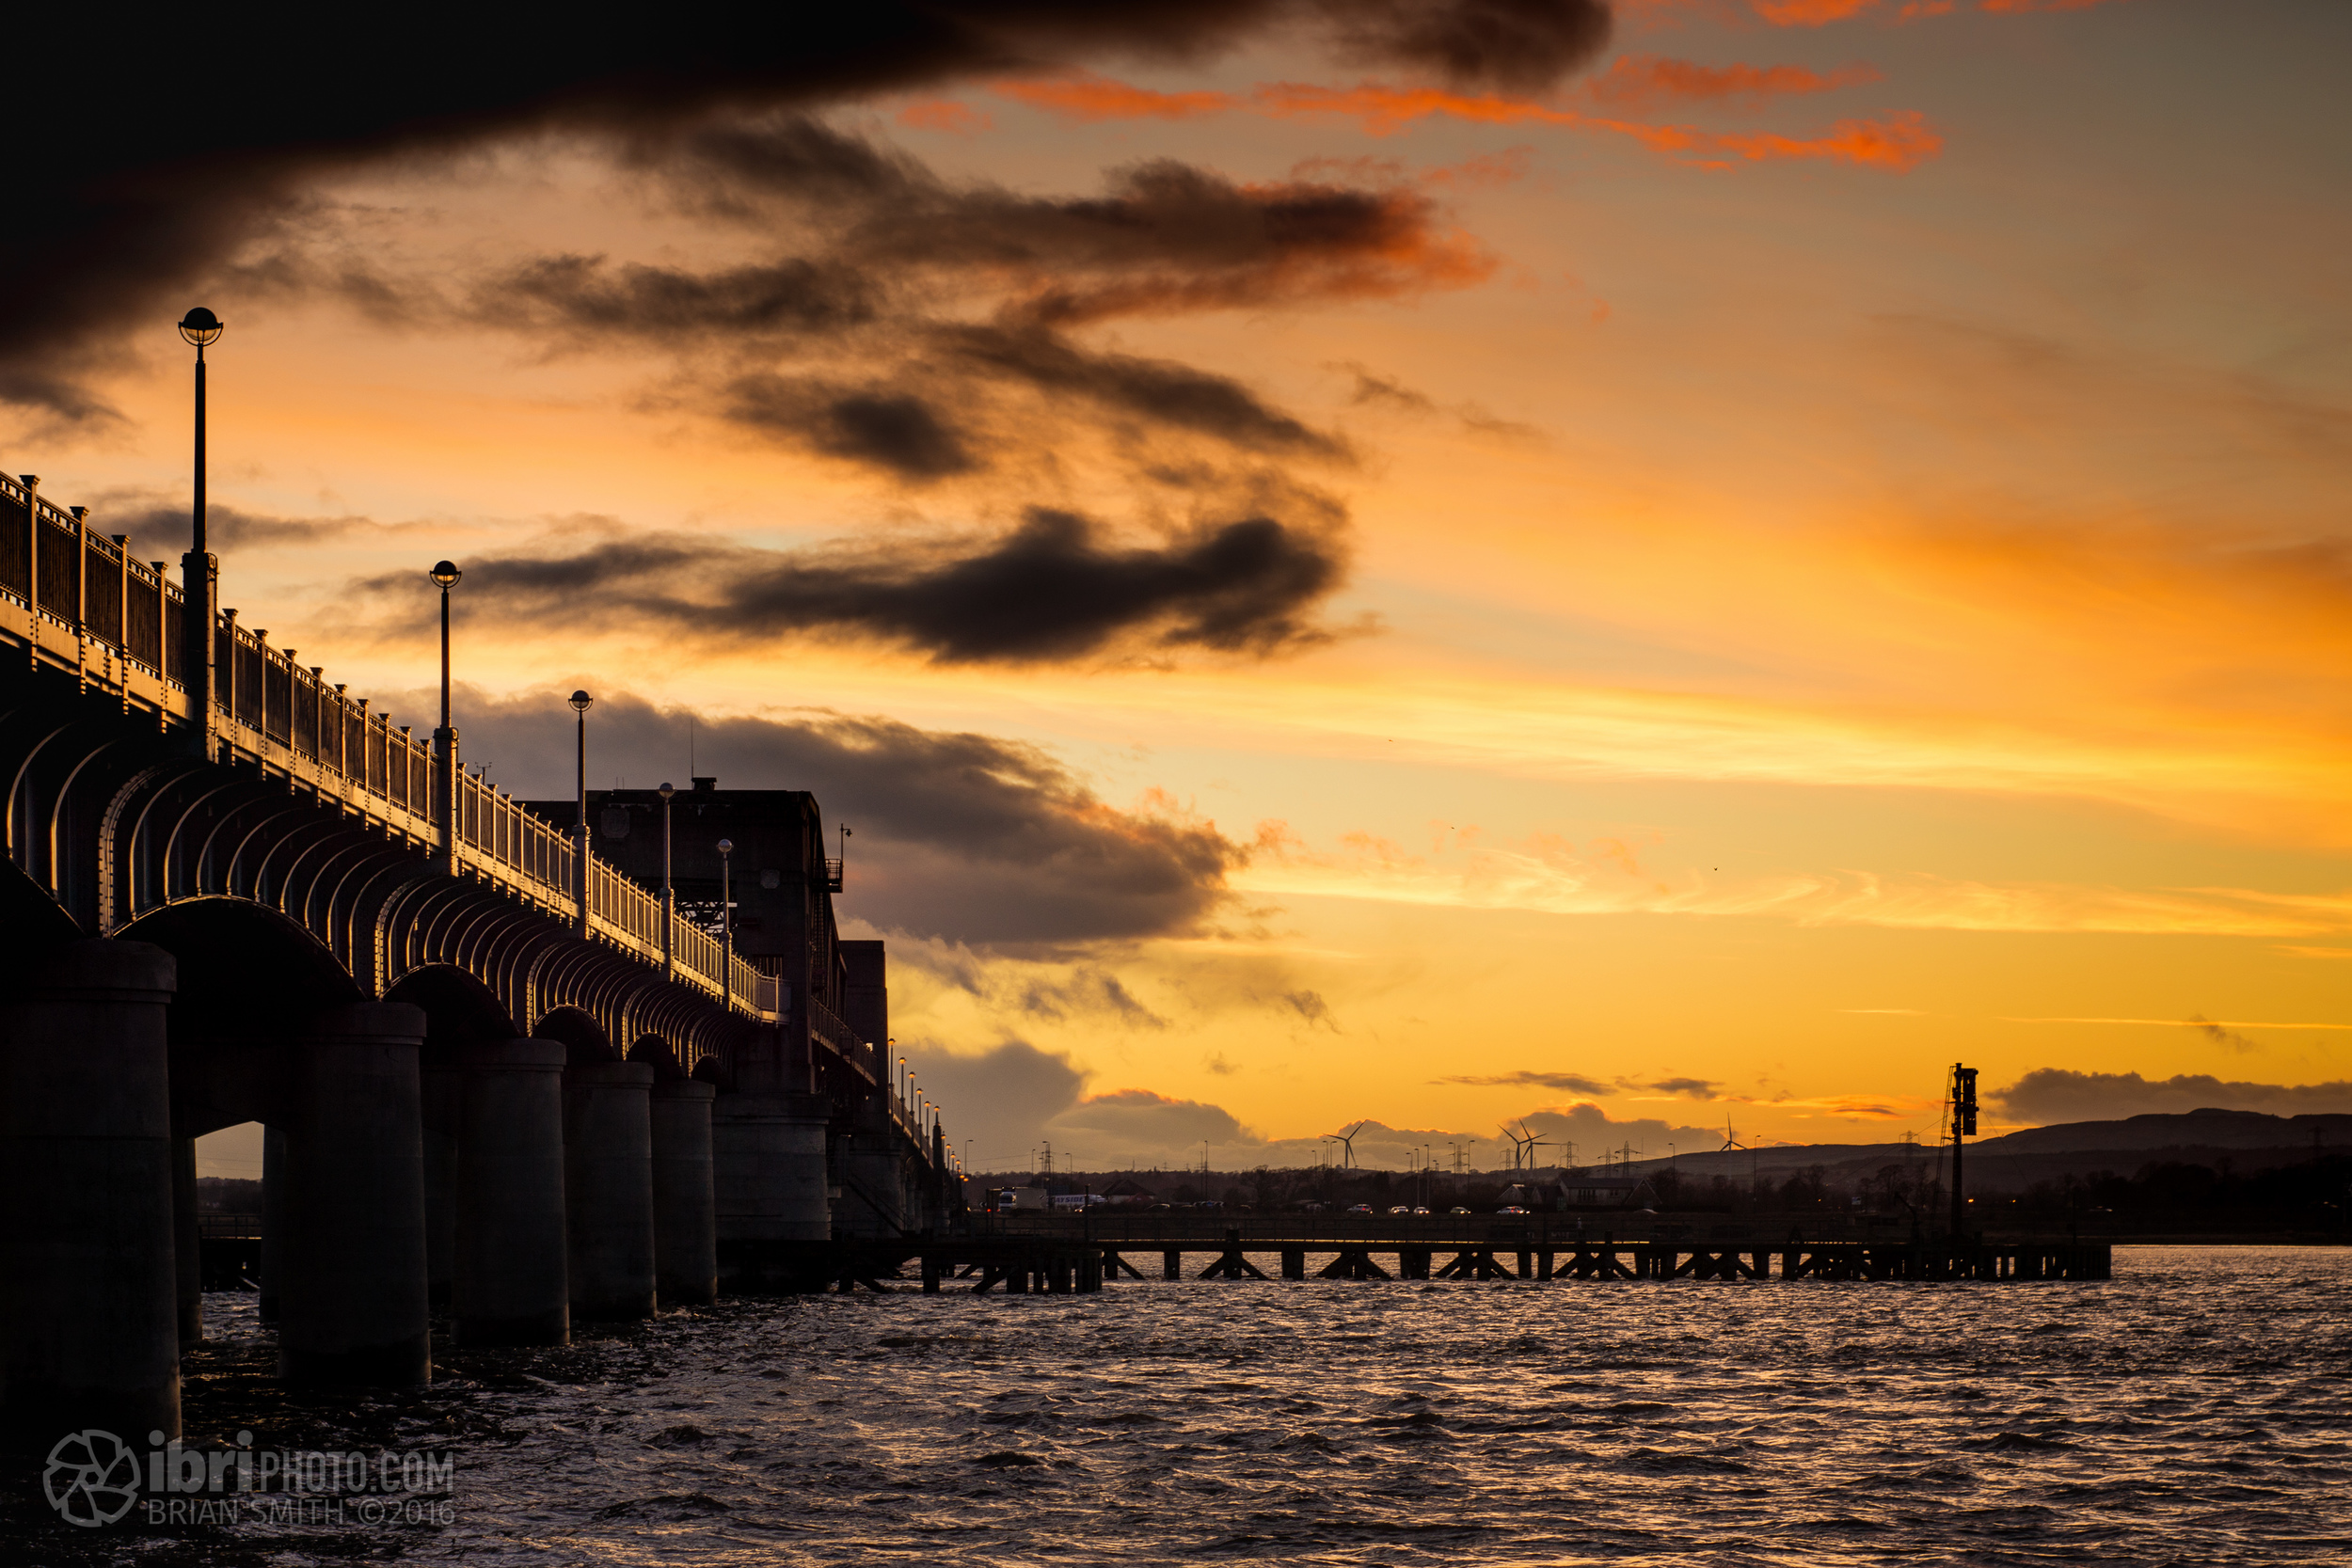 Looking south over the River Forth at sunset.